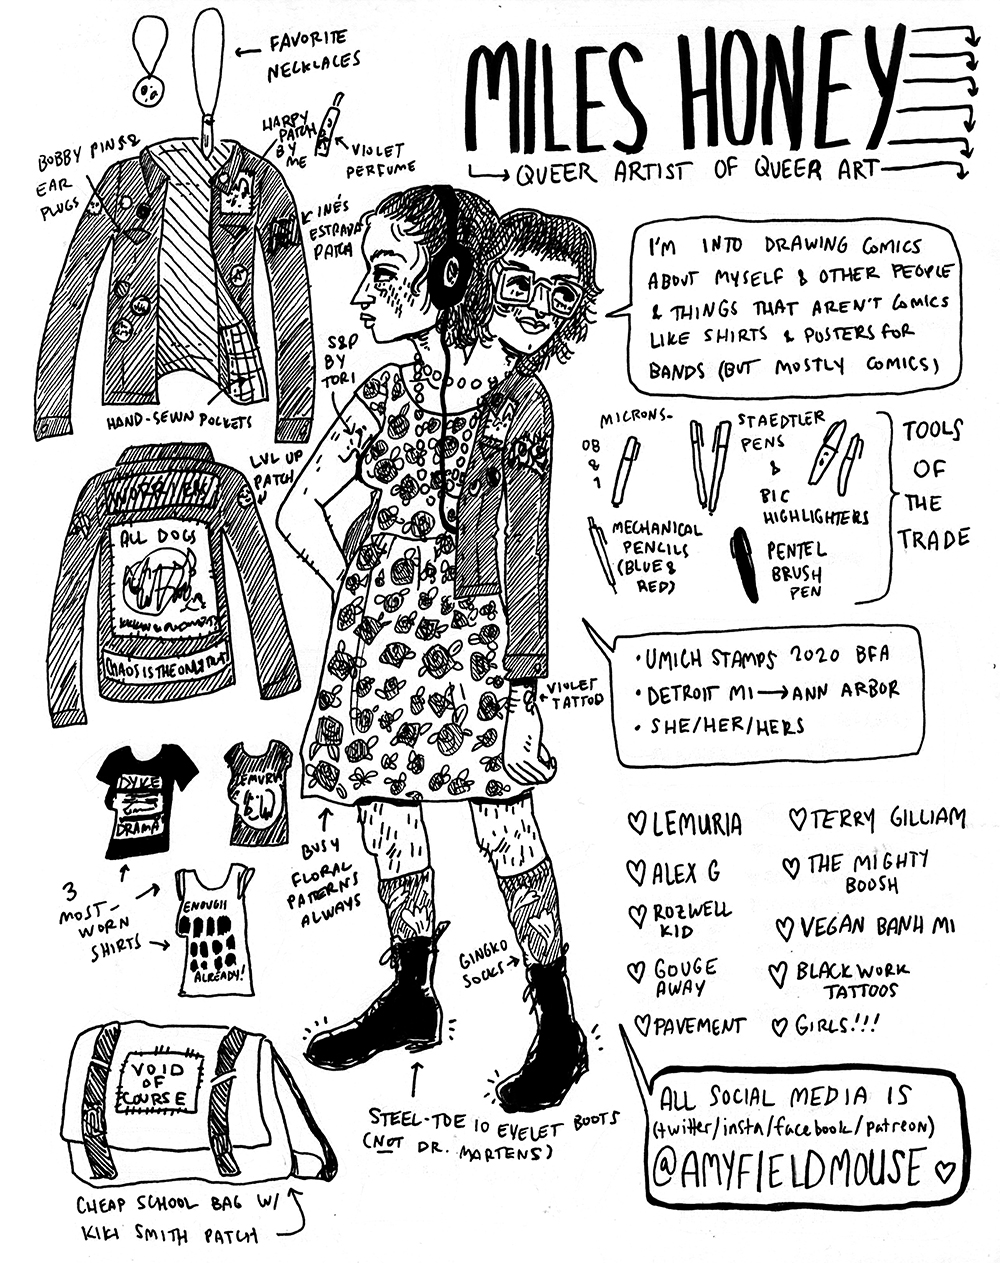 SILVER SPROCKET Interview with Miles Honey    Interview with Miles Honey by  Natalye Childress for Silver Sprocket    Can you tell us more about the job you share in the comic?   I think I worked there for like the whole summer, which makes me wonder how much I was getting paid. I remember being pissed that I had to buy sneakers because I was on my feet all day and wearing boots hurt too much.  I picked this one to do a comic about because it was actually the closest thing to a real job I'd ever had at that point, besides working part-time at the museum [mentioned below], which I was still doing. I could do something really poignant about calling rich alumni to beg for money now.   What is the BEST job you've had?   The best job I've ever had was working at a small contemporary art museum in Detroit called MOCAD — I worked there when I was 16 and 17 with a dozen other high schoolers doing event planning for local teenagers. It was actually not as art-focused as you'd think — there were some workshop events but also a lot of movie nights and video game tournaments.  Having to get a real job after that kind of sucked. I work at a call center basically telemarketing for my college now, and I really miss getting paid to torrent X-Men movies. At least none of my coworkers are 13 now, though.   What is the value or purpose in making art?   I totally cannot imagine being anything but an artist. Almost everyone in my life is an artist in some form and it manifests in everything about people — the way you communicate, the way you think, the way you dress, the stuff you like. Art is such a great vehicle for collaboration — as someone whose entire life is music, having that natural exchange is amazing.  There are downsides, though. Because I started out doing lots of freelance when I was like 16, tons of people figured out they could rip me off because I was young and dumb, especially musicians and people who I respected. I've learned not to tell people too many times that I'd